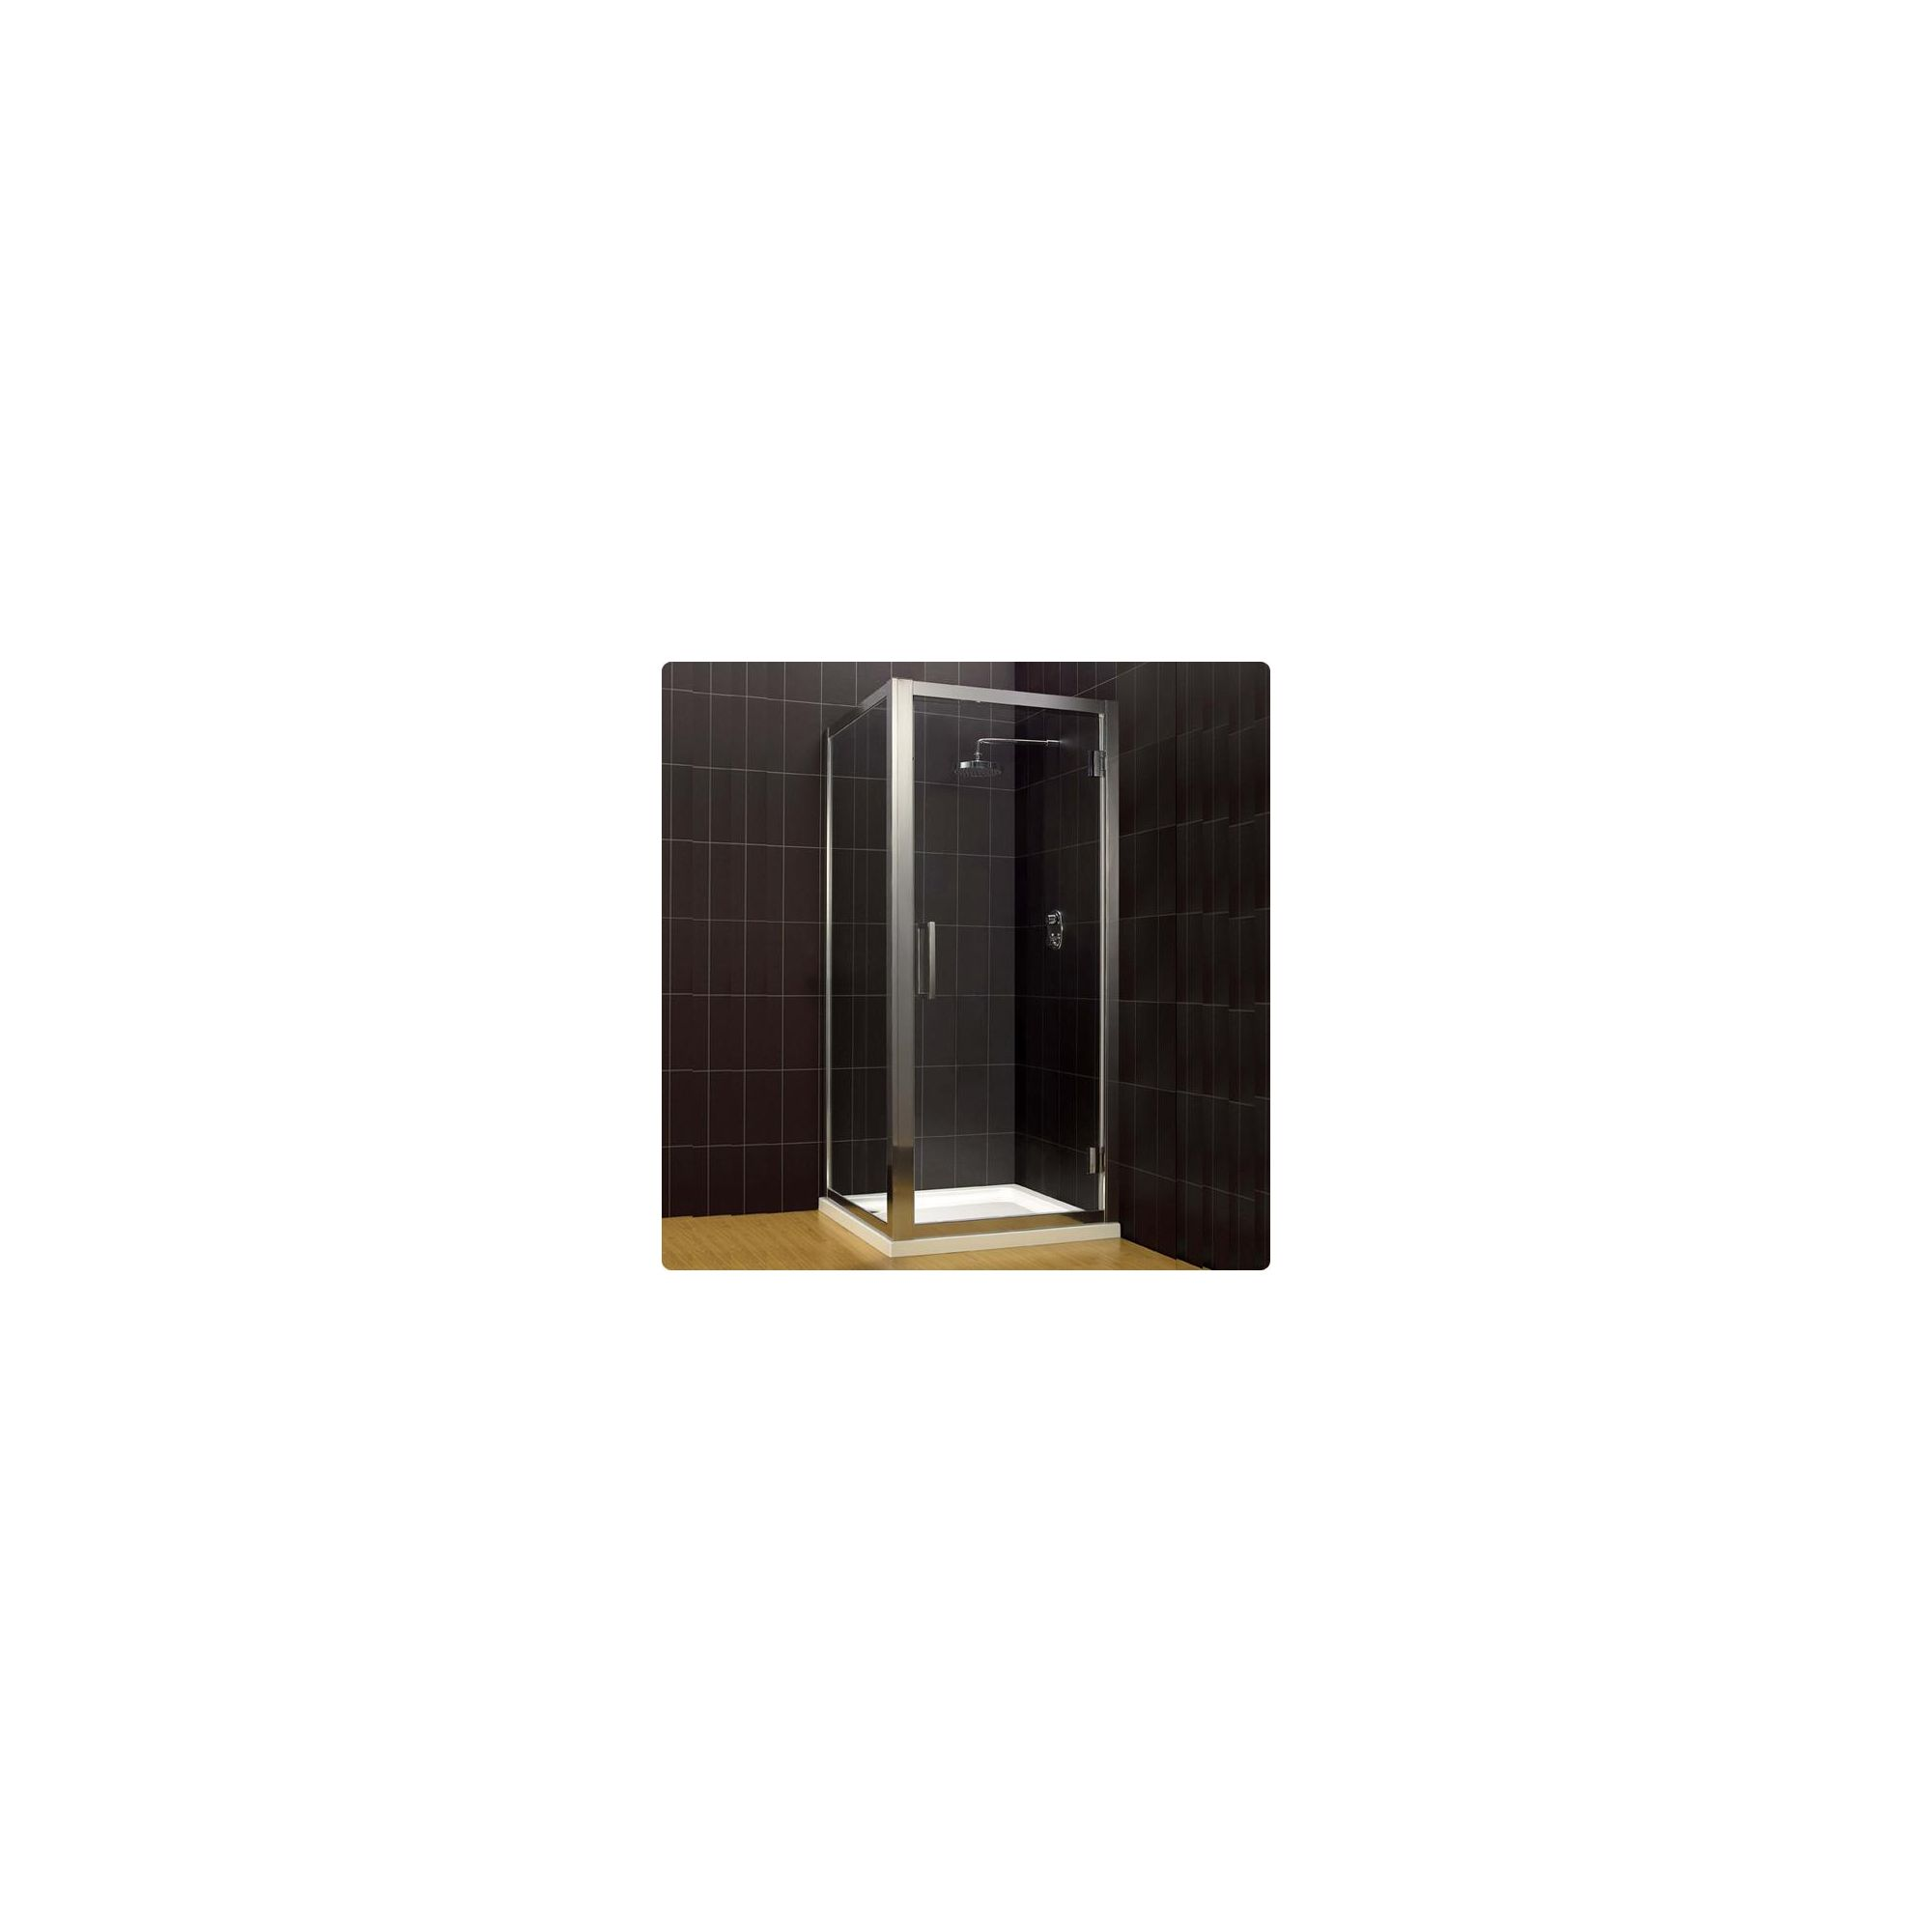 Duchy Supreme Silver Hinged Door Shower Enclosure with Towel Rail, 1000mm x 800mm, Standard Tray, 8mm Glass at Tesco Direct